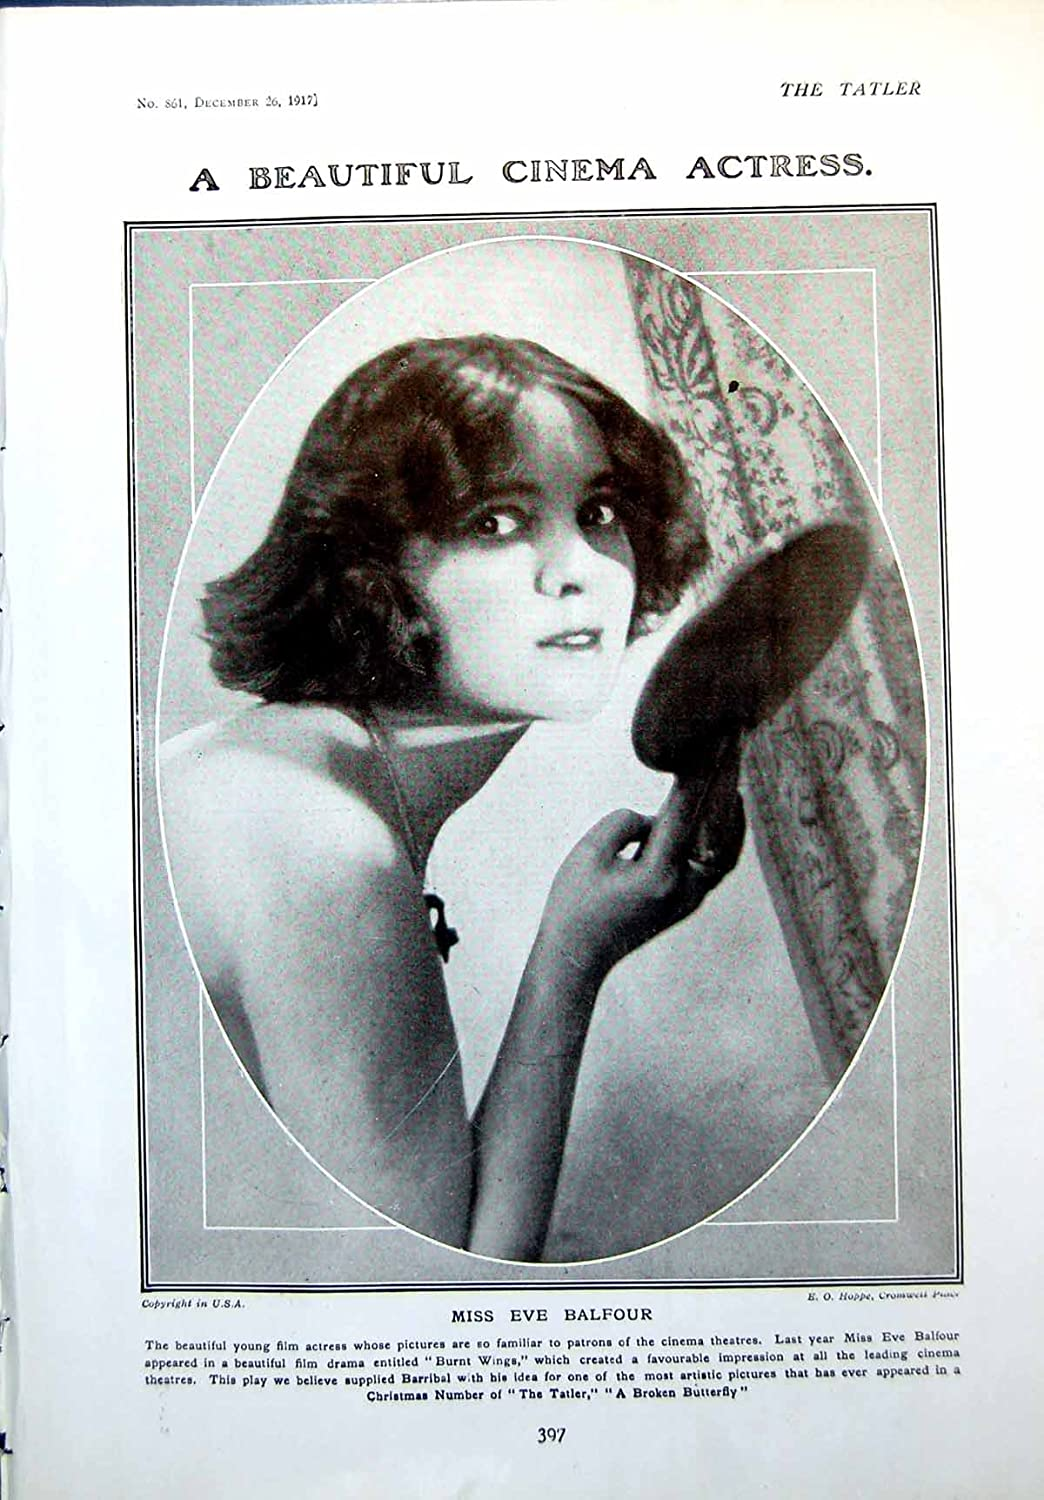 Eve Balfour (actress)